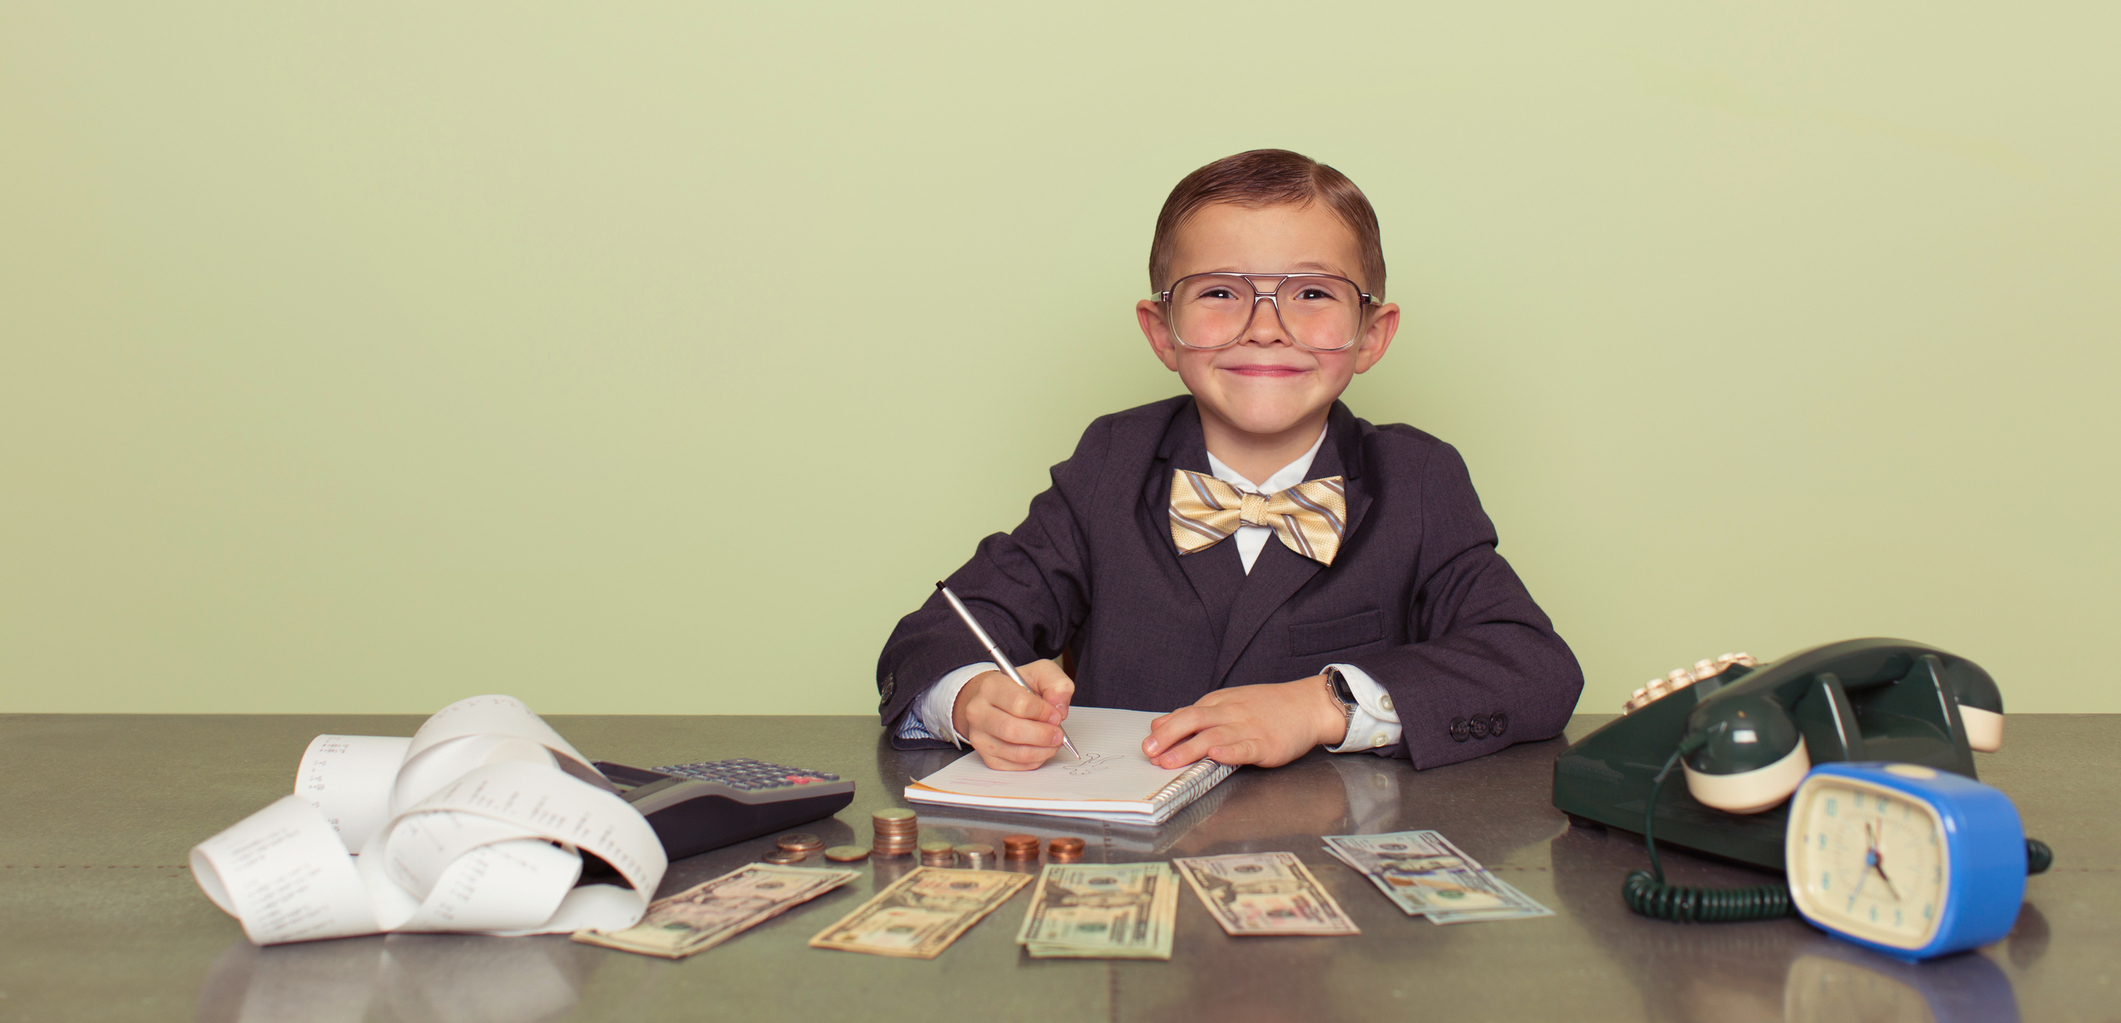 Content Marketing Salary: Young Boy Counting money